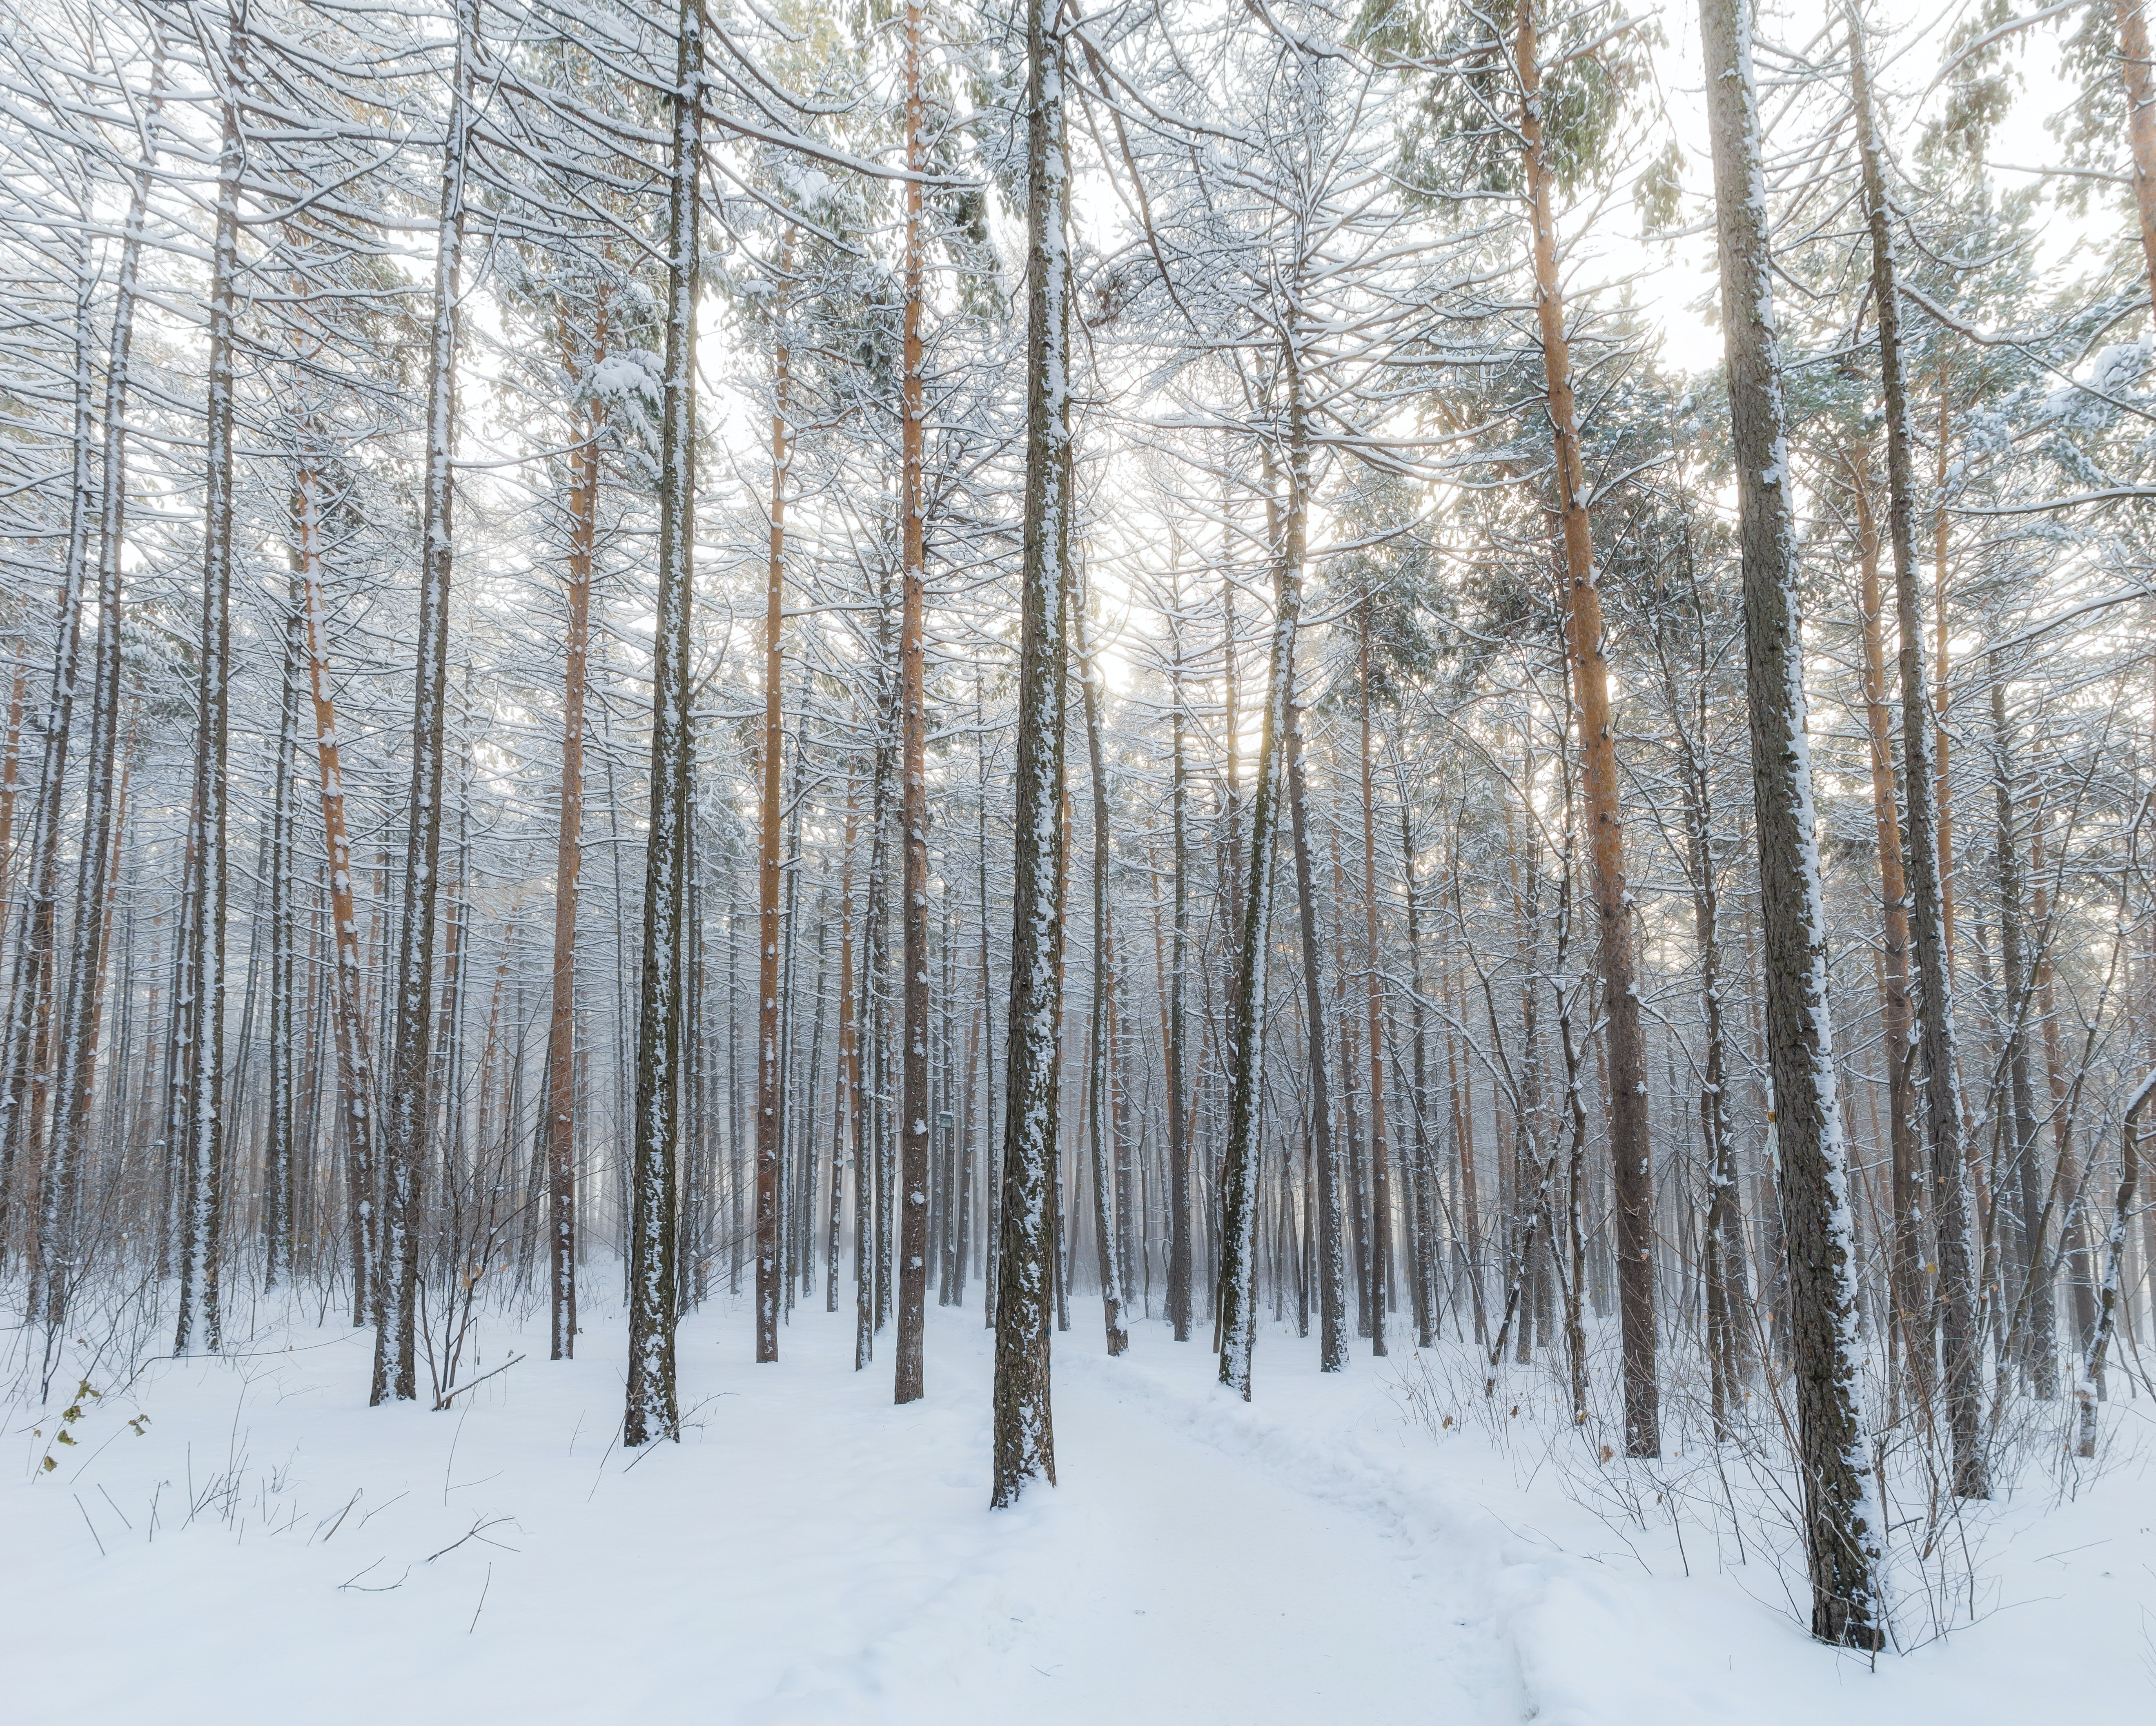 Bare trees buried in the snow in the forest with a soft white glow